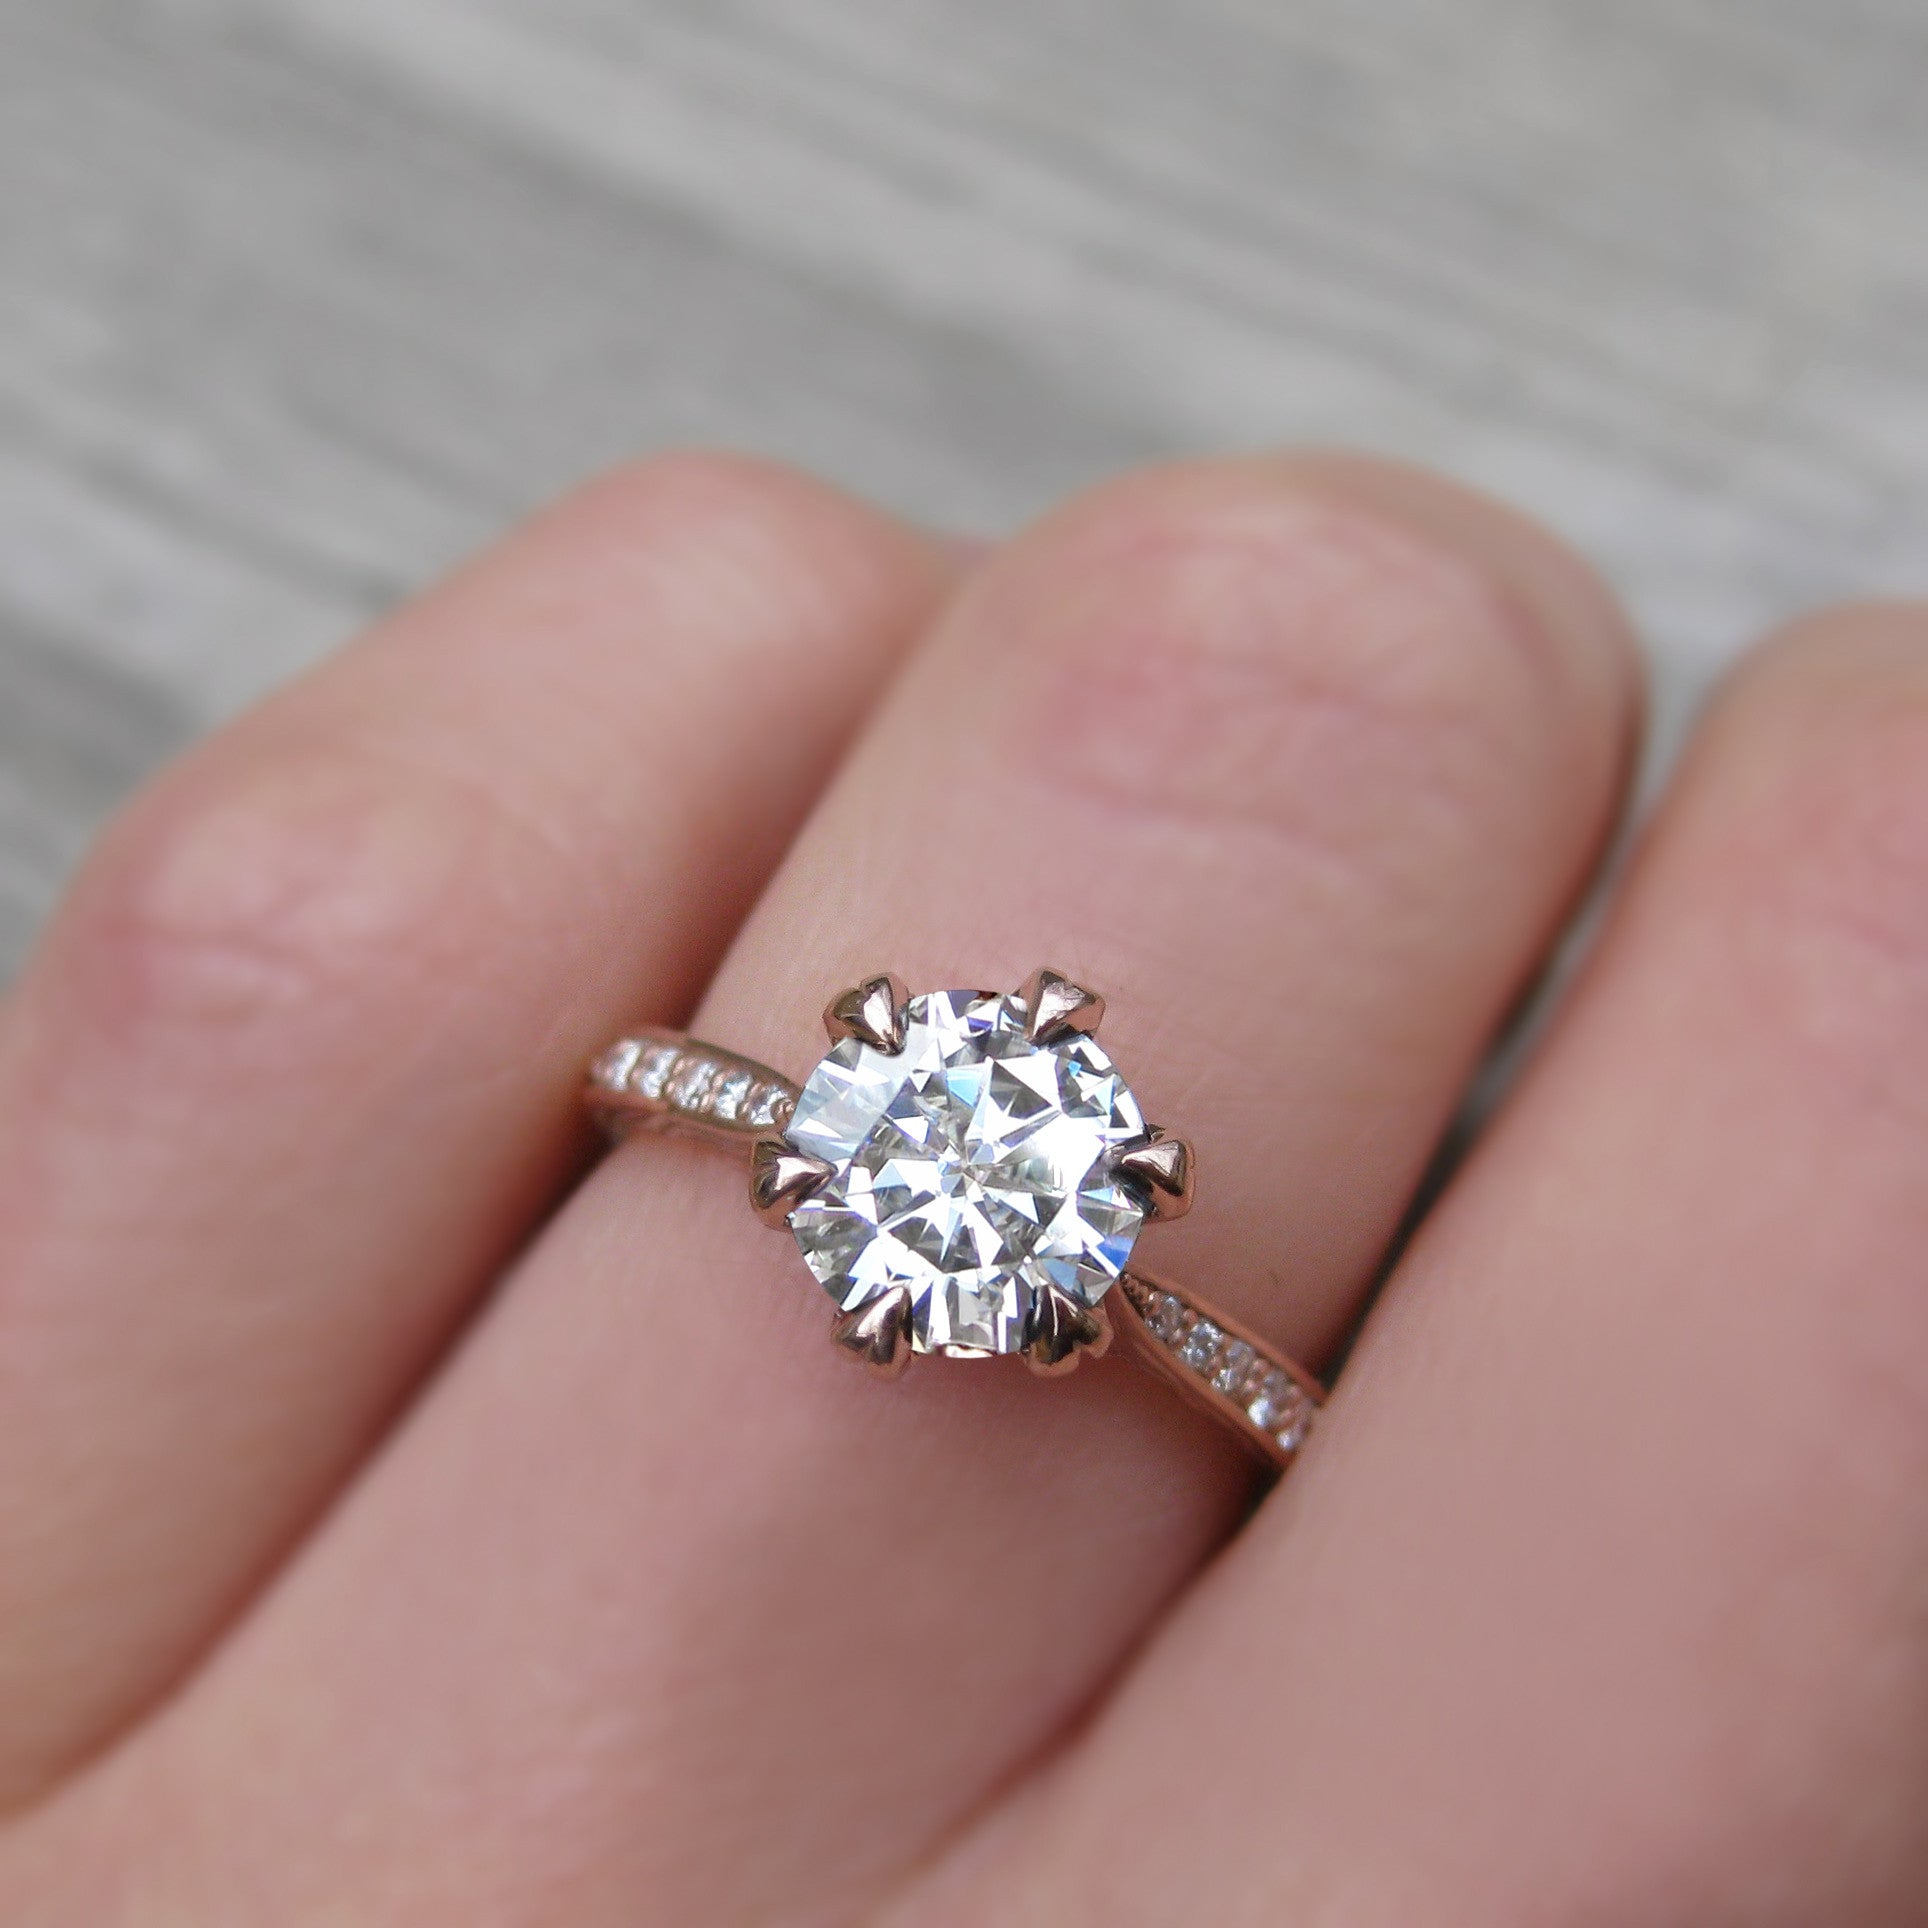 Lab-Grown Diamond Engagement Ring | Kristin Coffin Jewelry